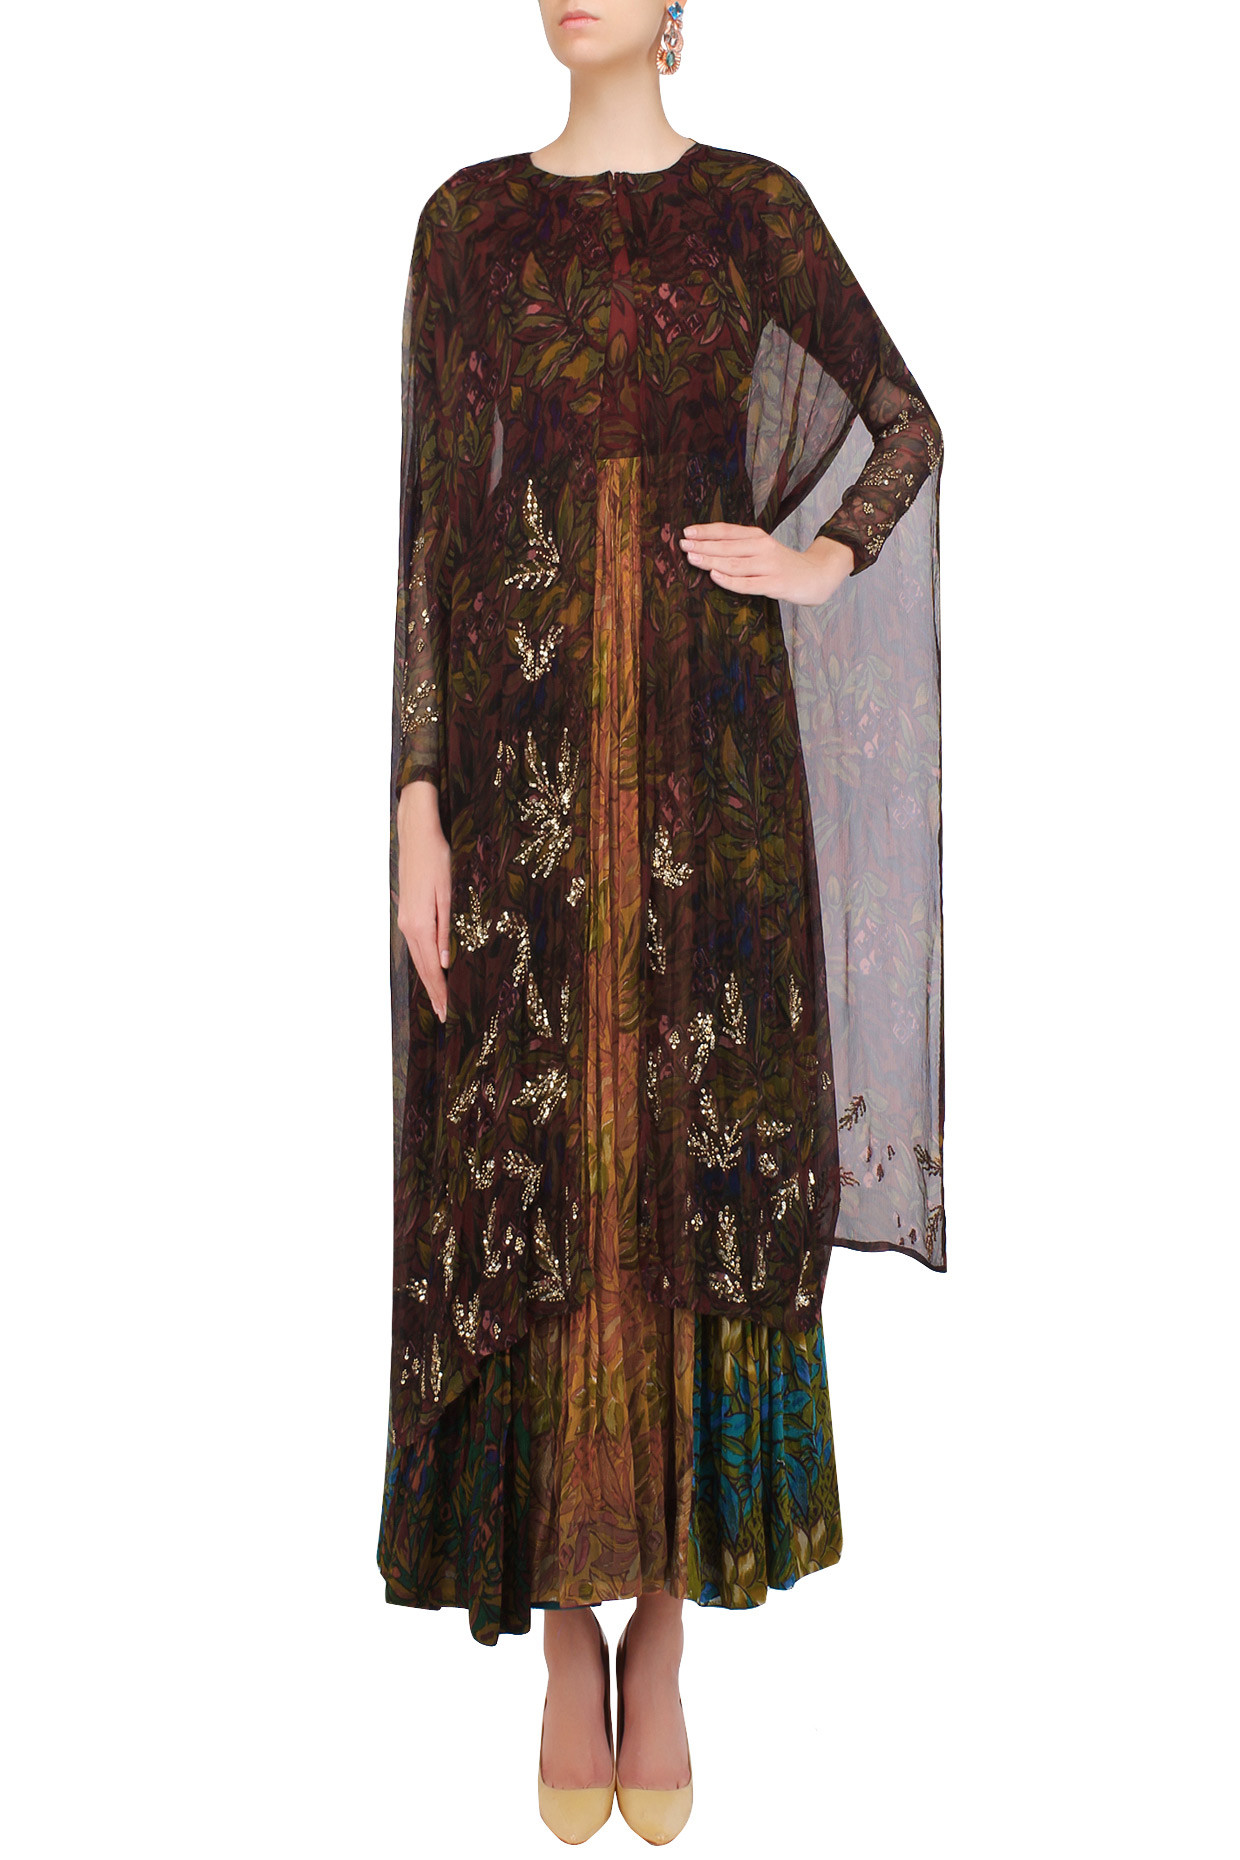 Maroon Rapid Print Dress With Sequinned Cape and Leggings by Pallavi Jaipur